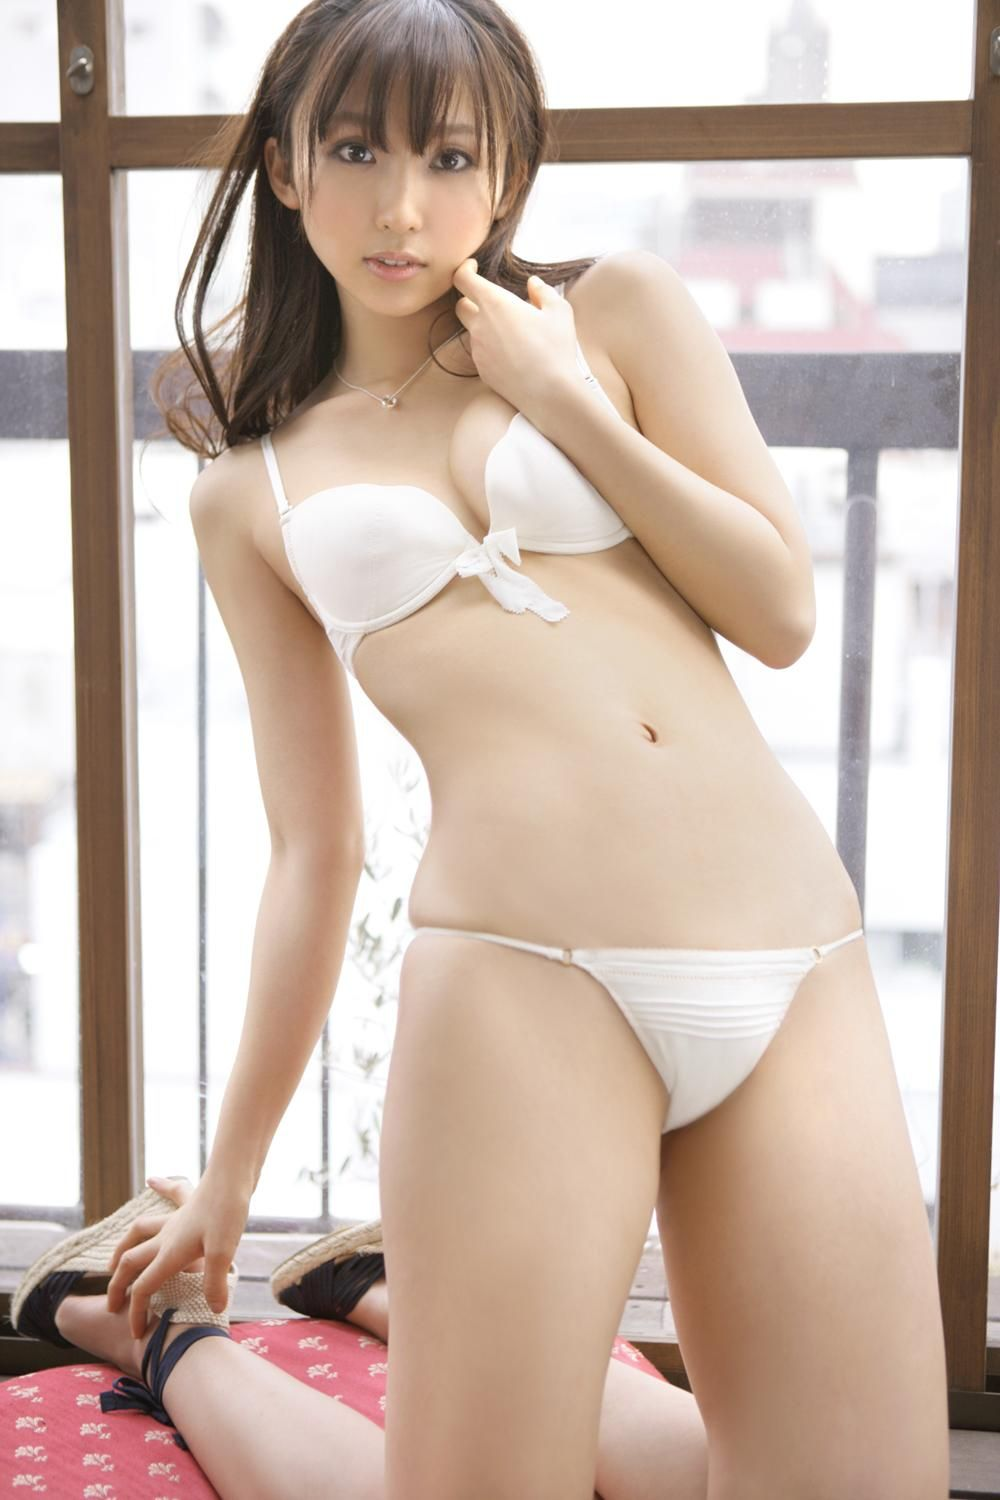 Remarkable, rather cute japanese girls lingerie that interfere